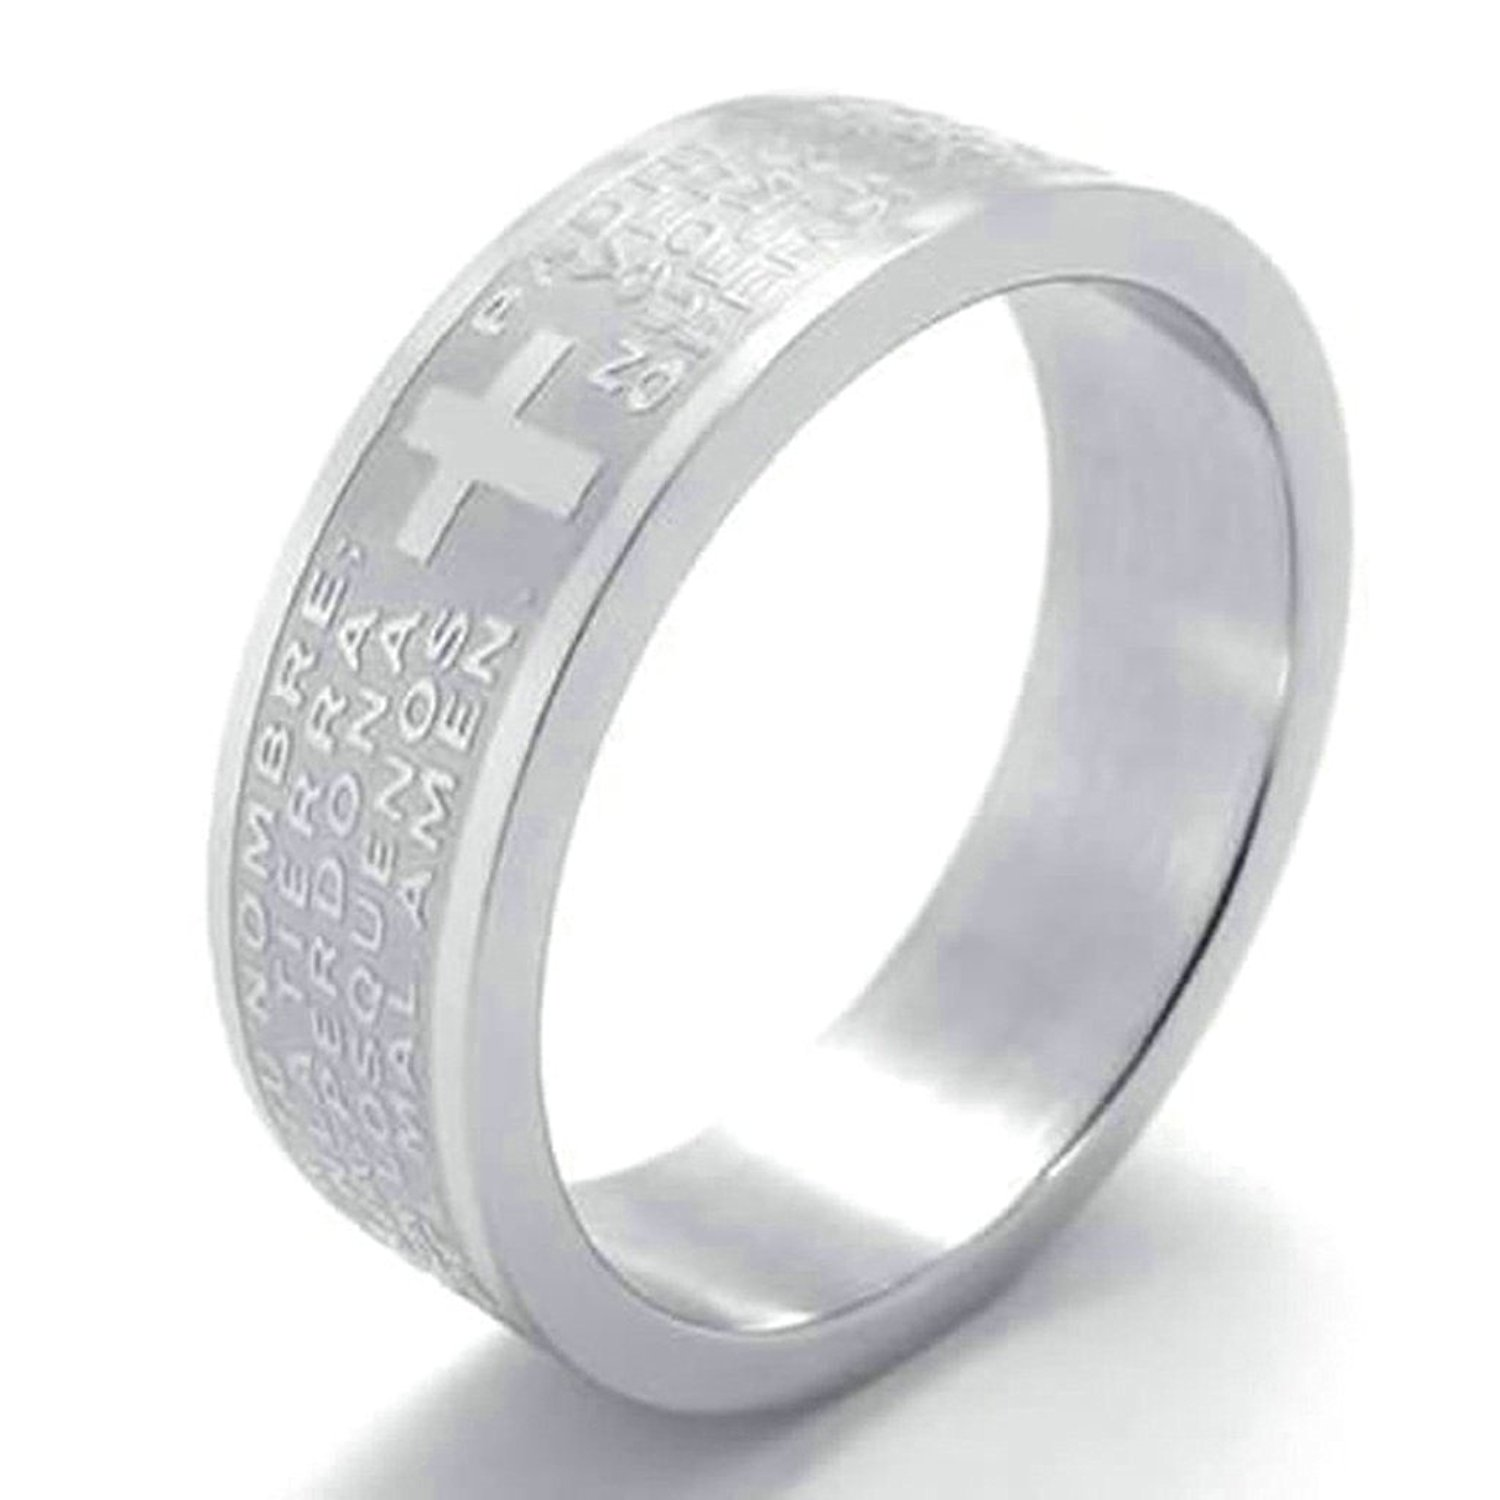 0fdb7baa47 Get Quotations · Daesar Stainless Steel Rings Mens Rings 6mm English  Version Lords Prayer Bands Cross Rings Silver